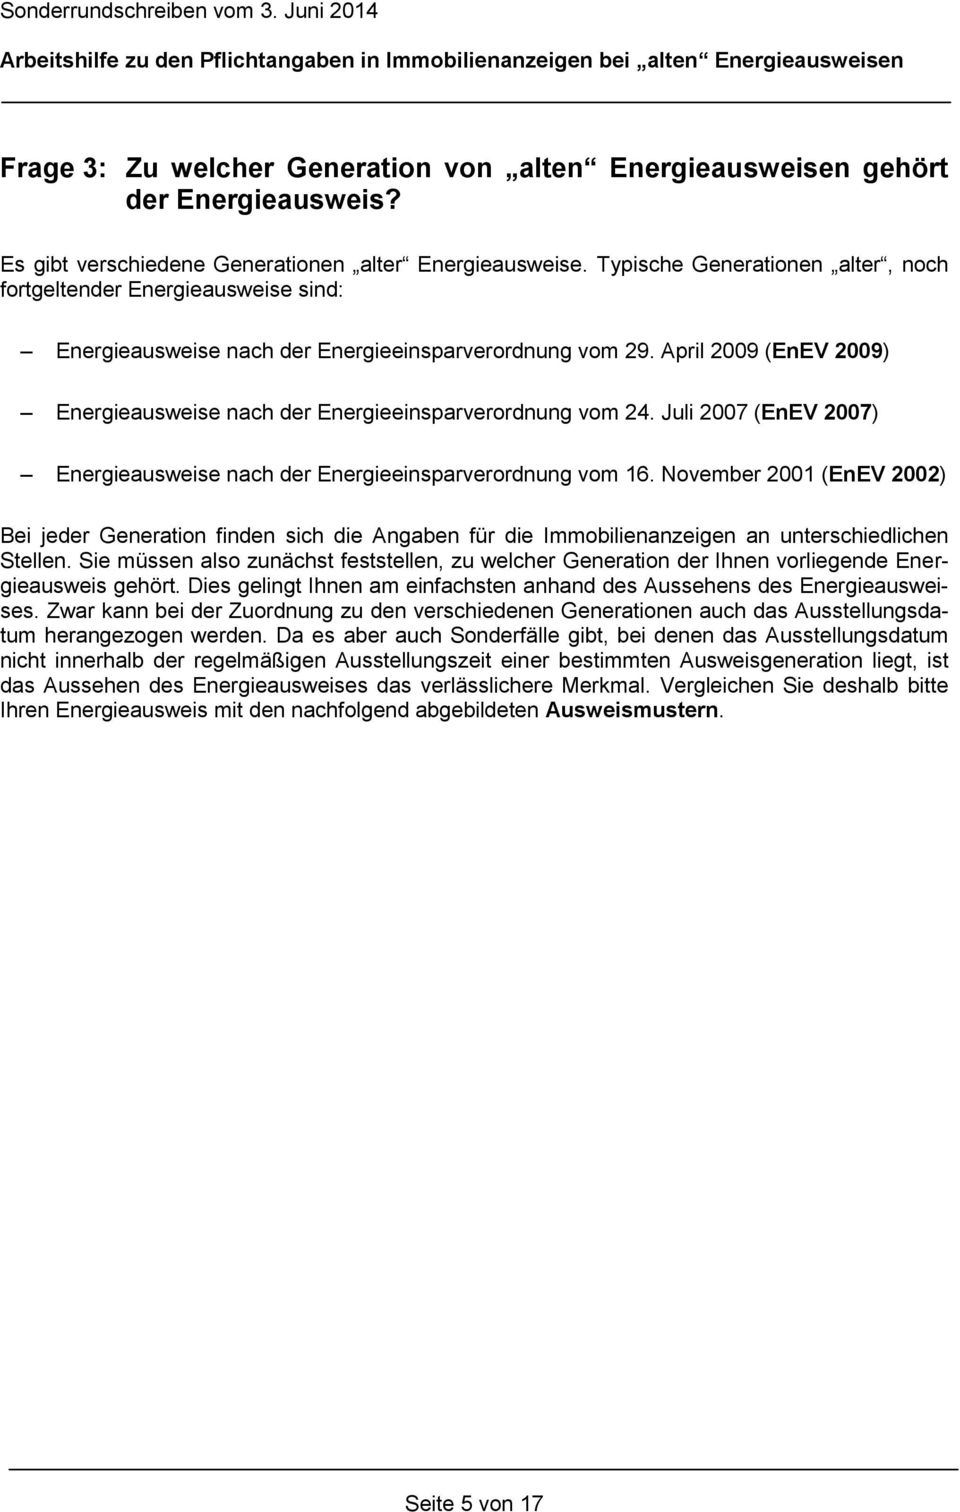 April 2009 (EnEV 2009) Energieausweise nach der Energieeinsparverordnung vom 24. Juli 2007 (EnEV 2007) Energieausweise nach der Energieeinsparverordnung vom 16.